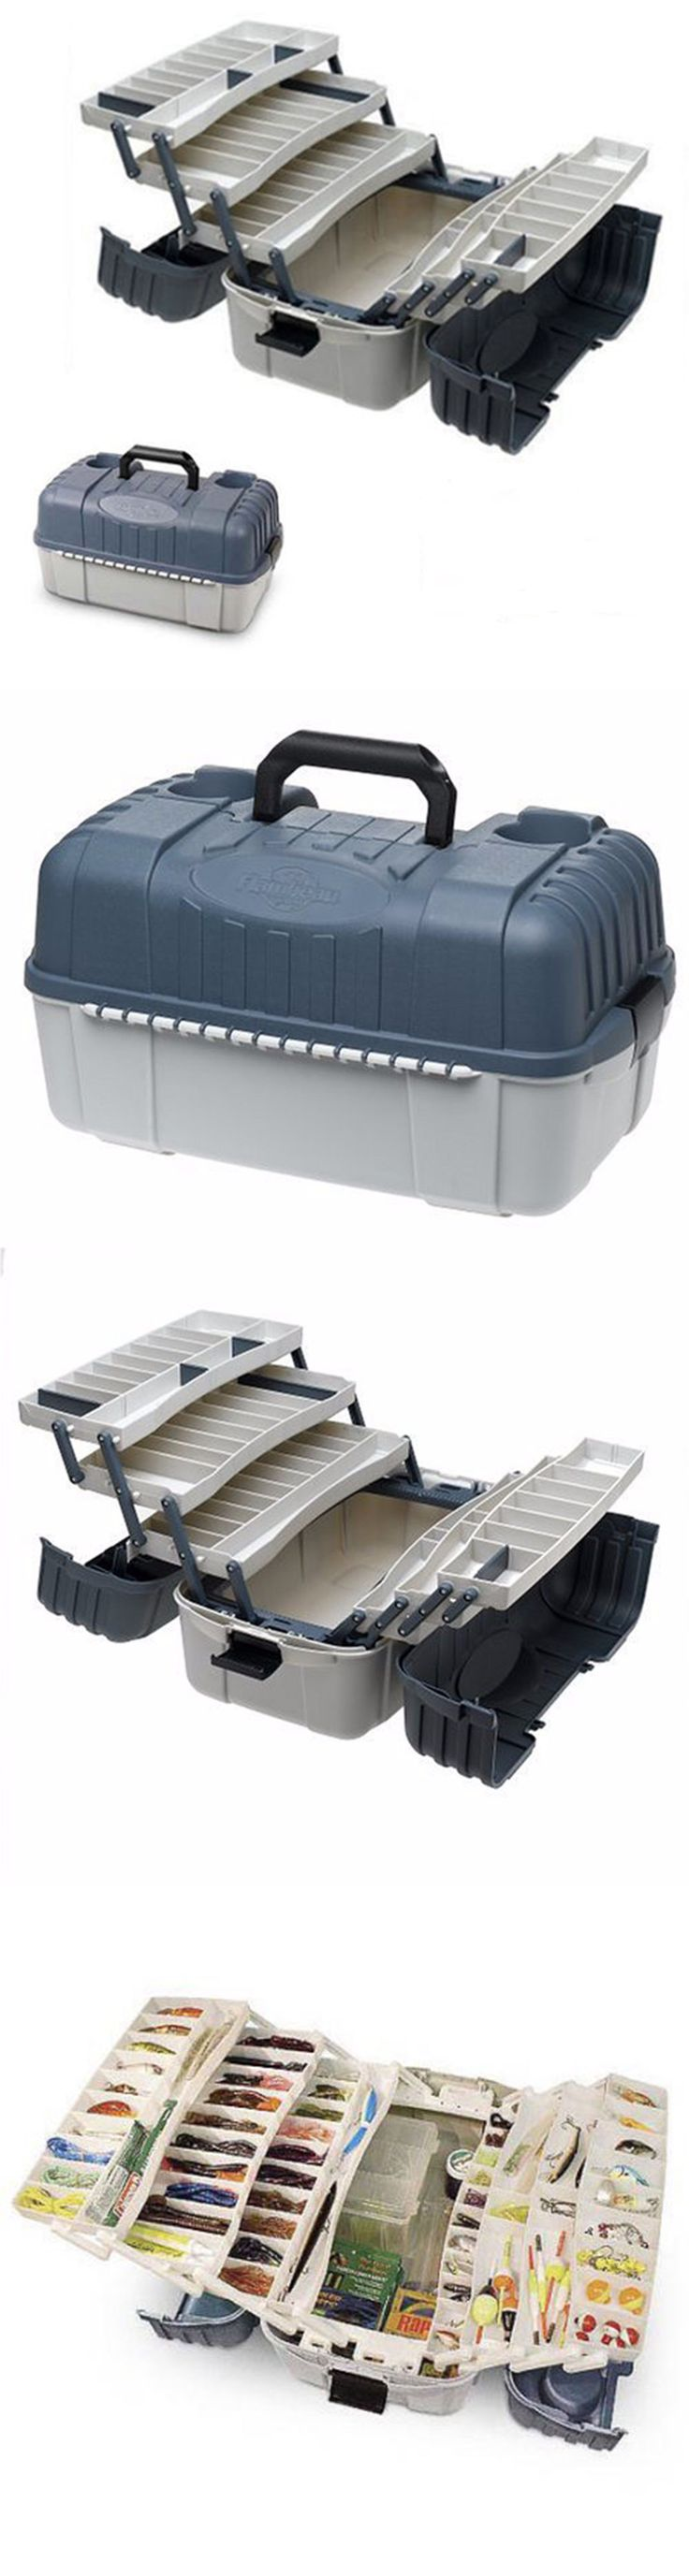 Tackle Boxes And Bags 22696 Fishing Box 7 Tray Hooks Lure Gear Organizer Storage